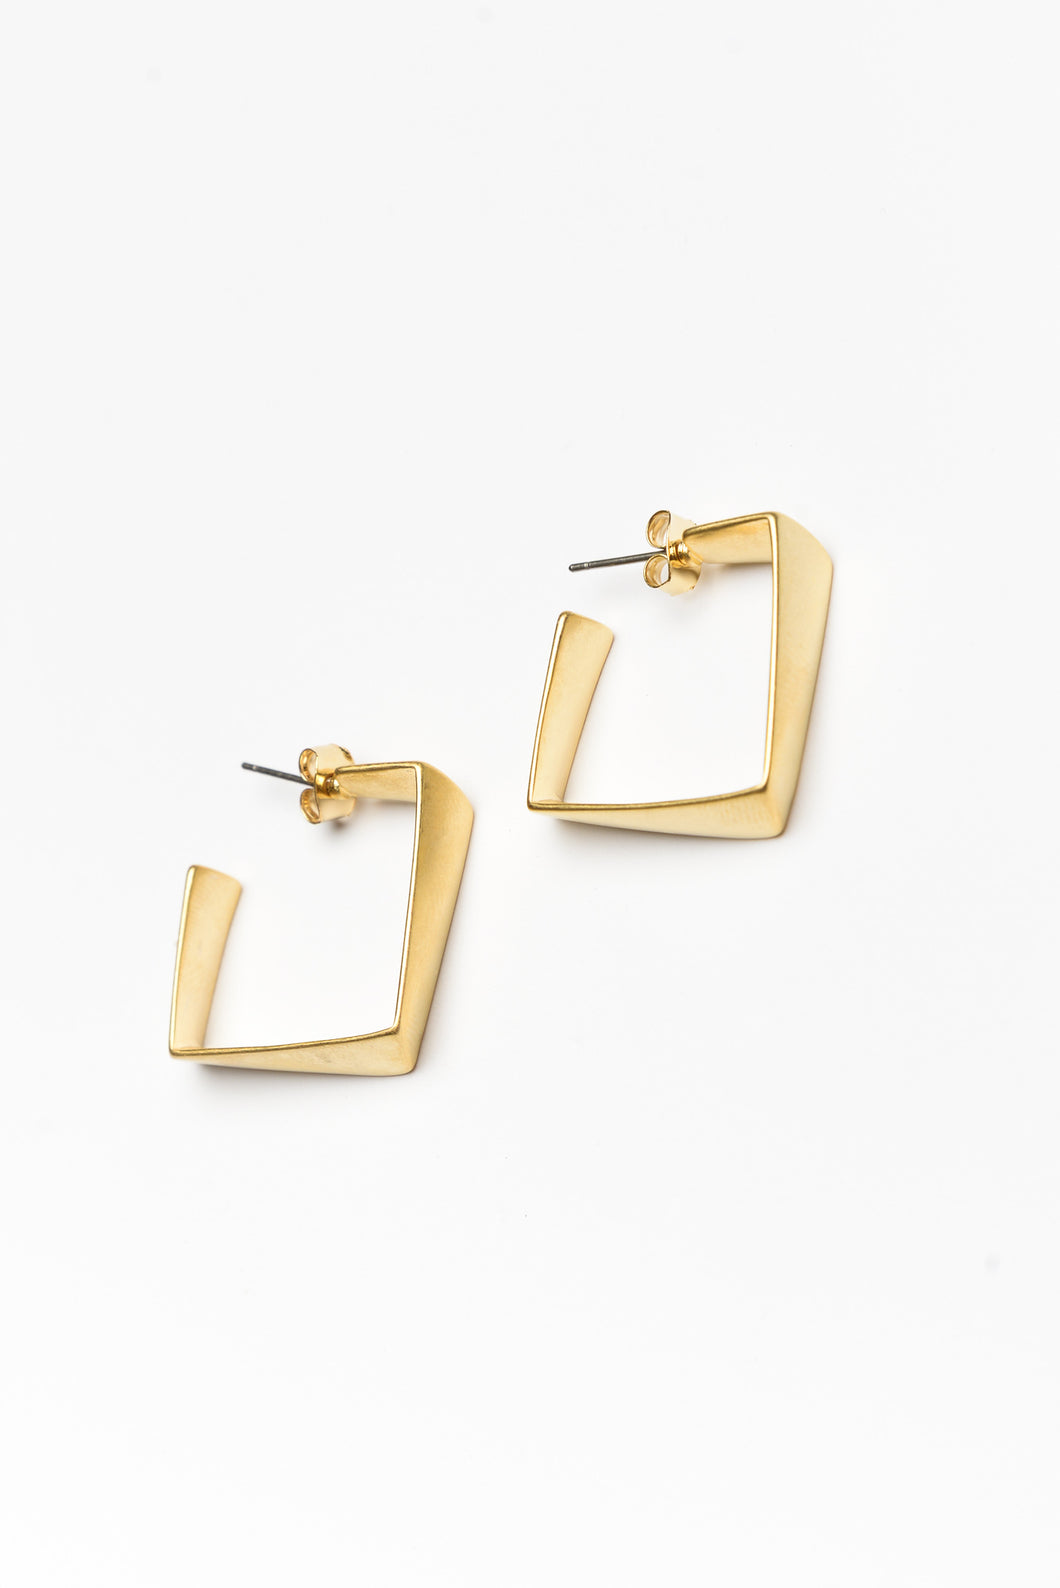 Mira Gold Square Twisted Hoops